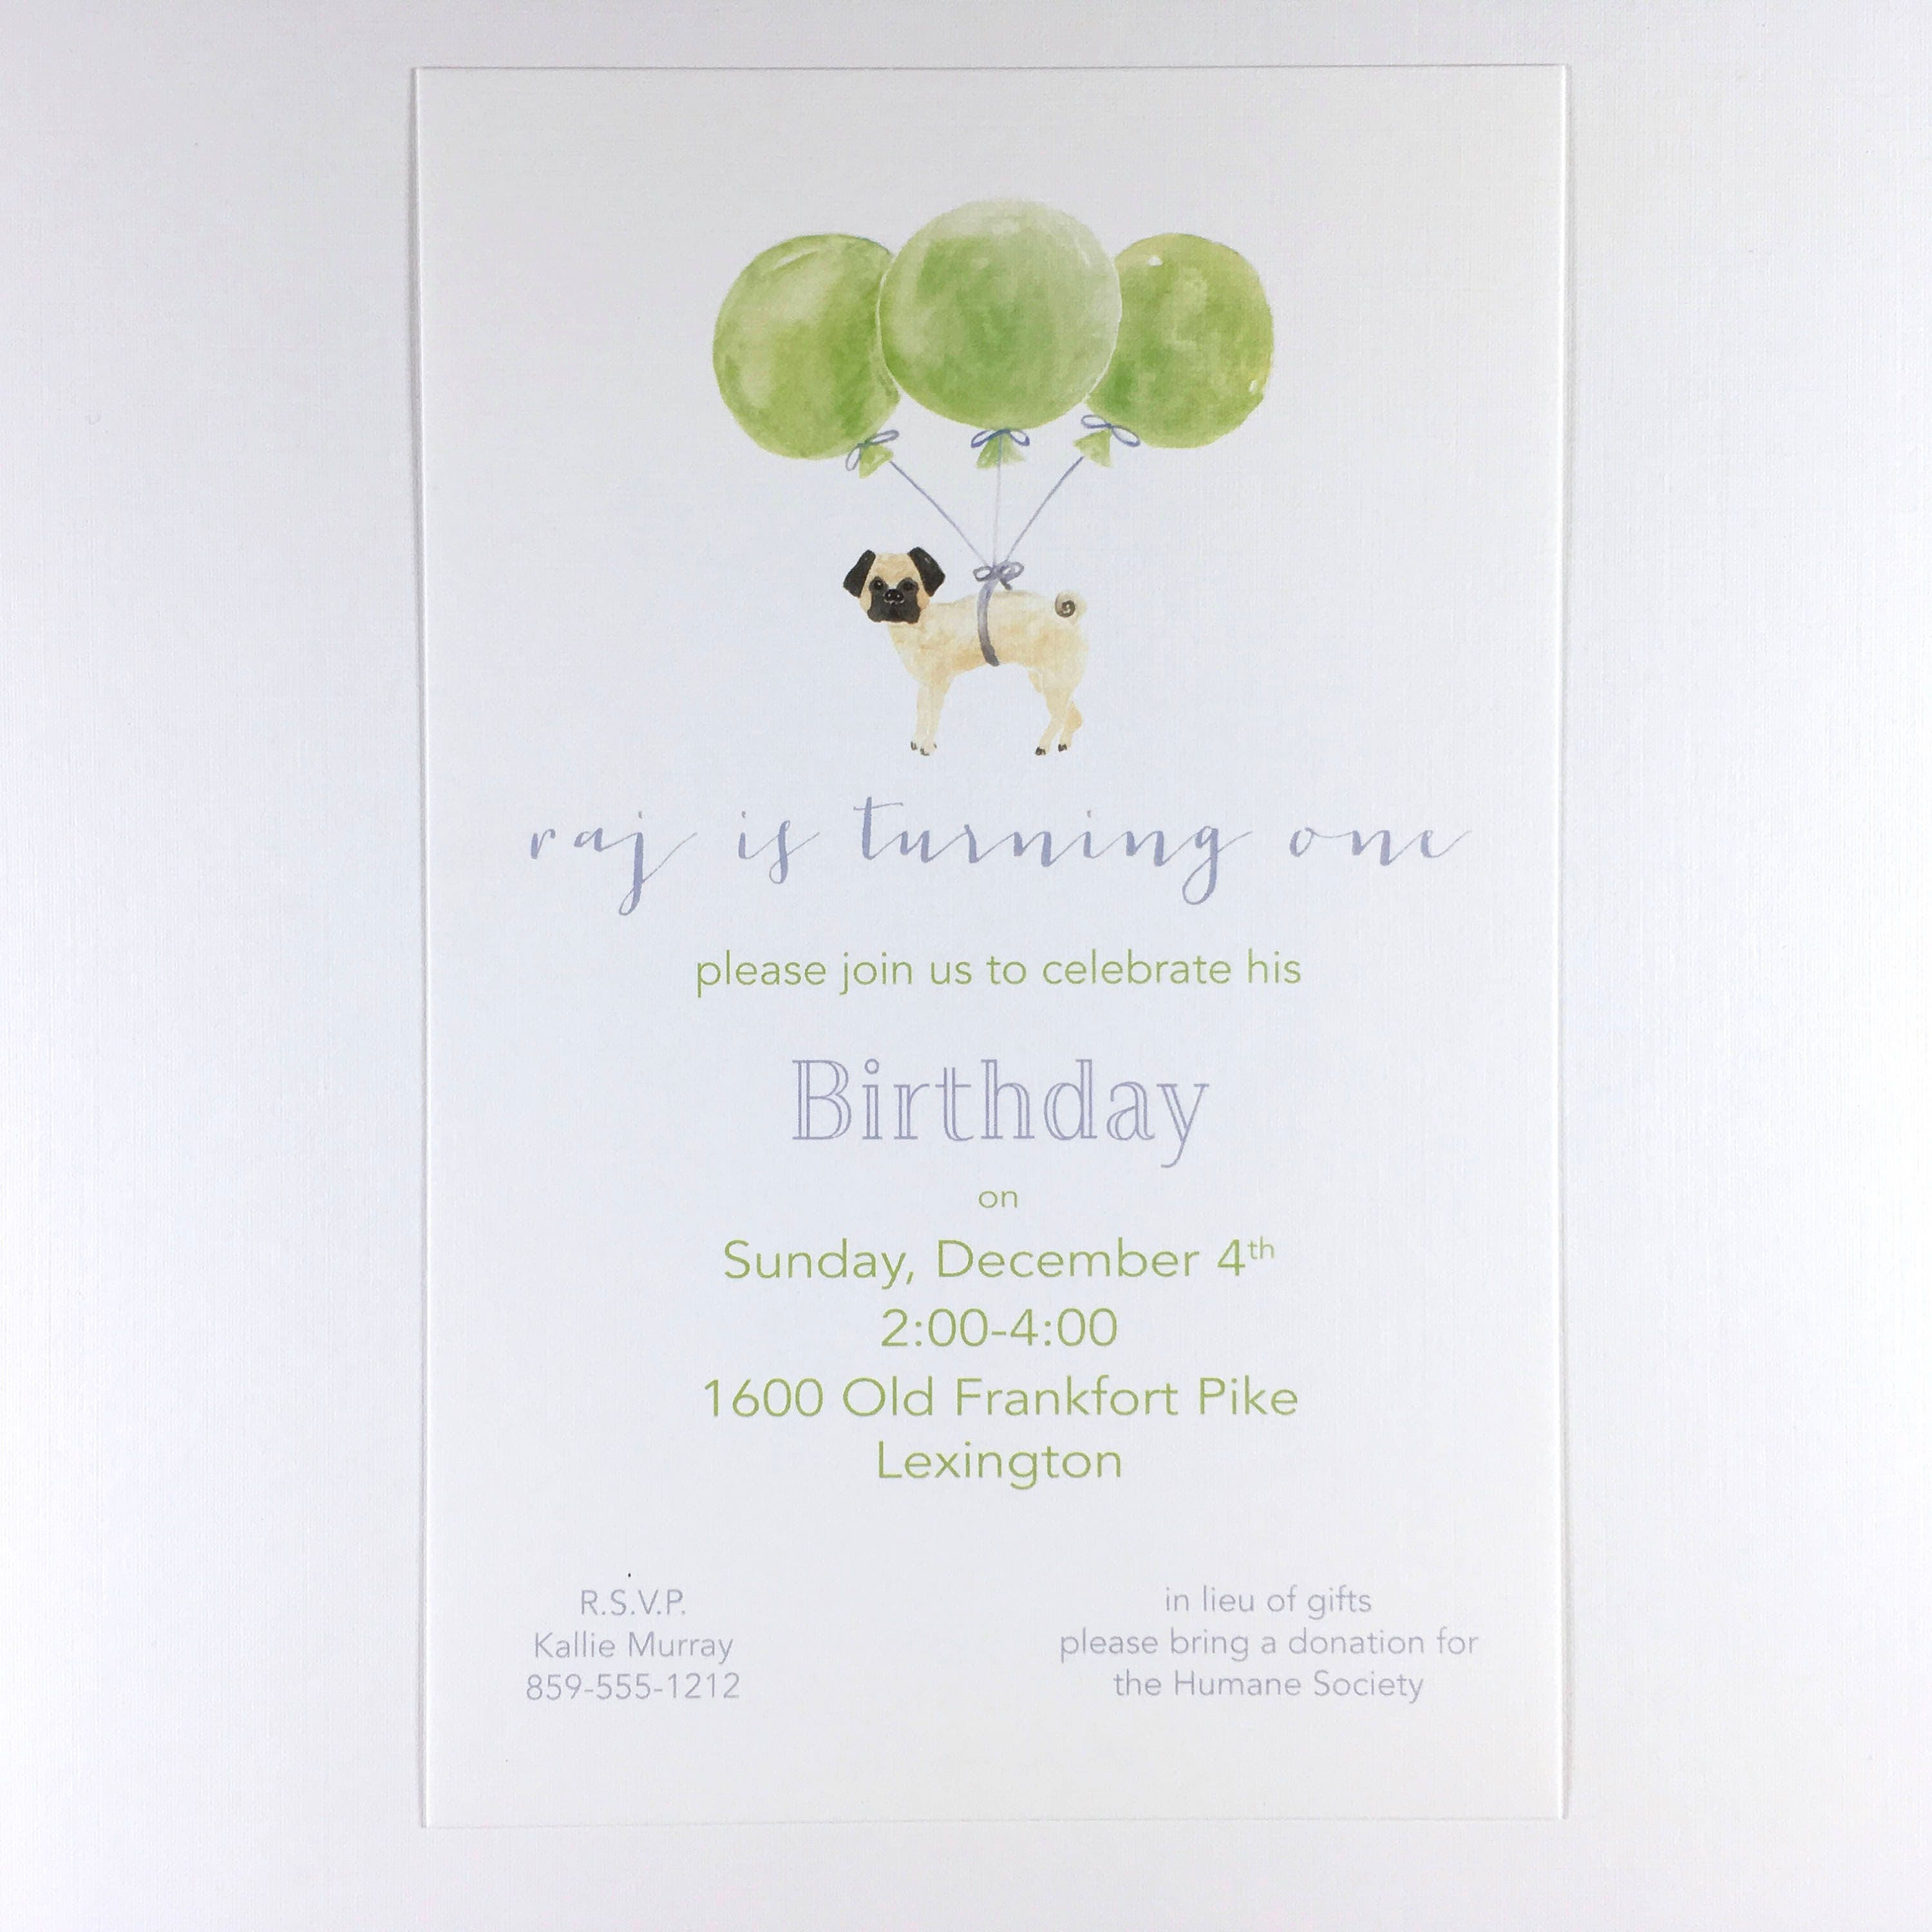 Childrens invitations birthday party childs party pug balloons gallery photo gallery photo stopboris Image collections